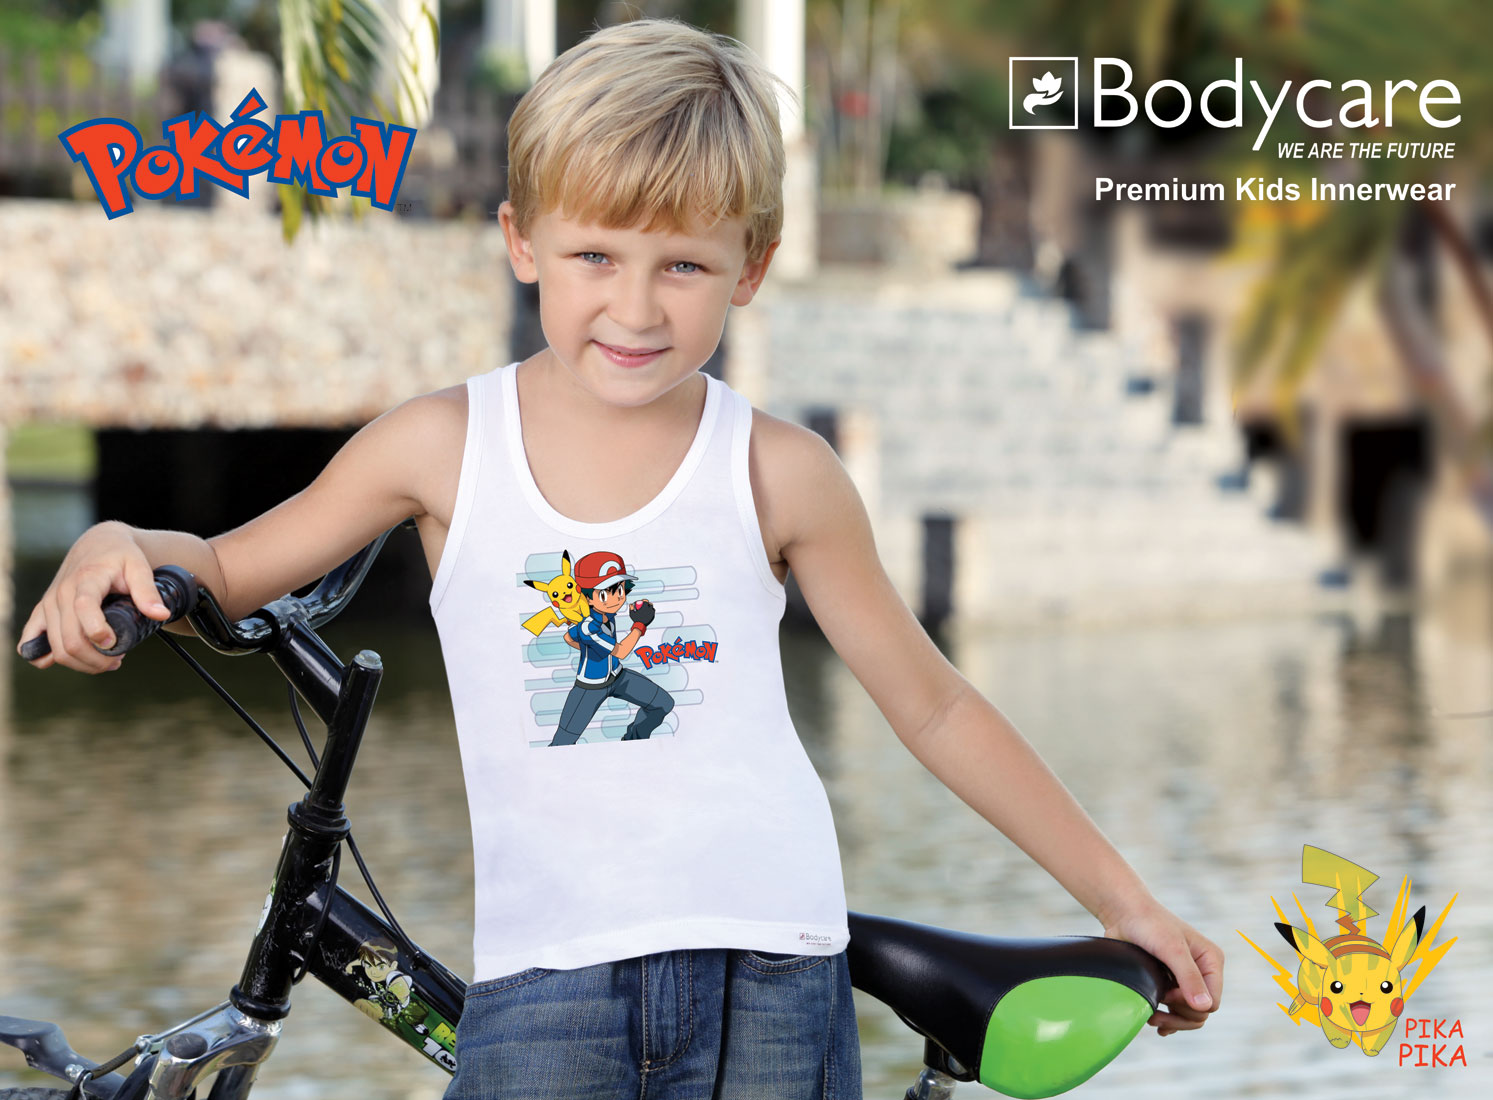 Kid's can now have fun with their favourite characters on clothes